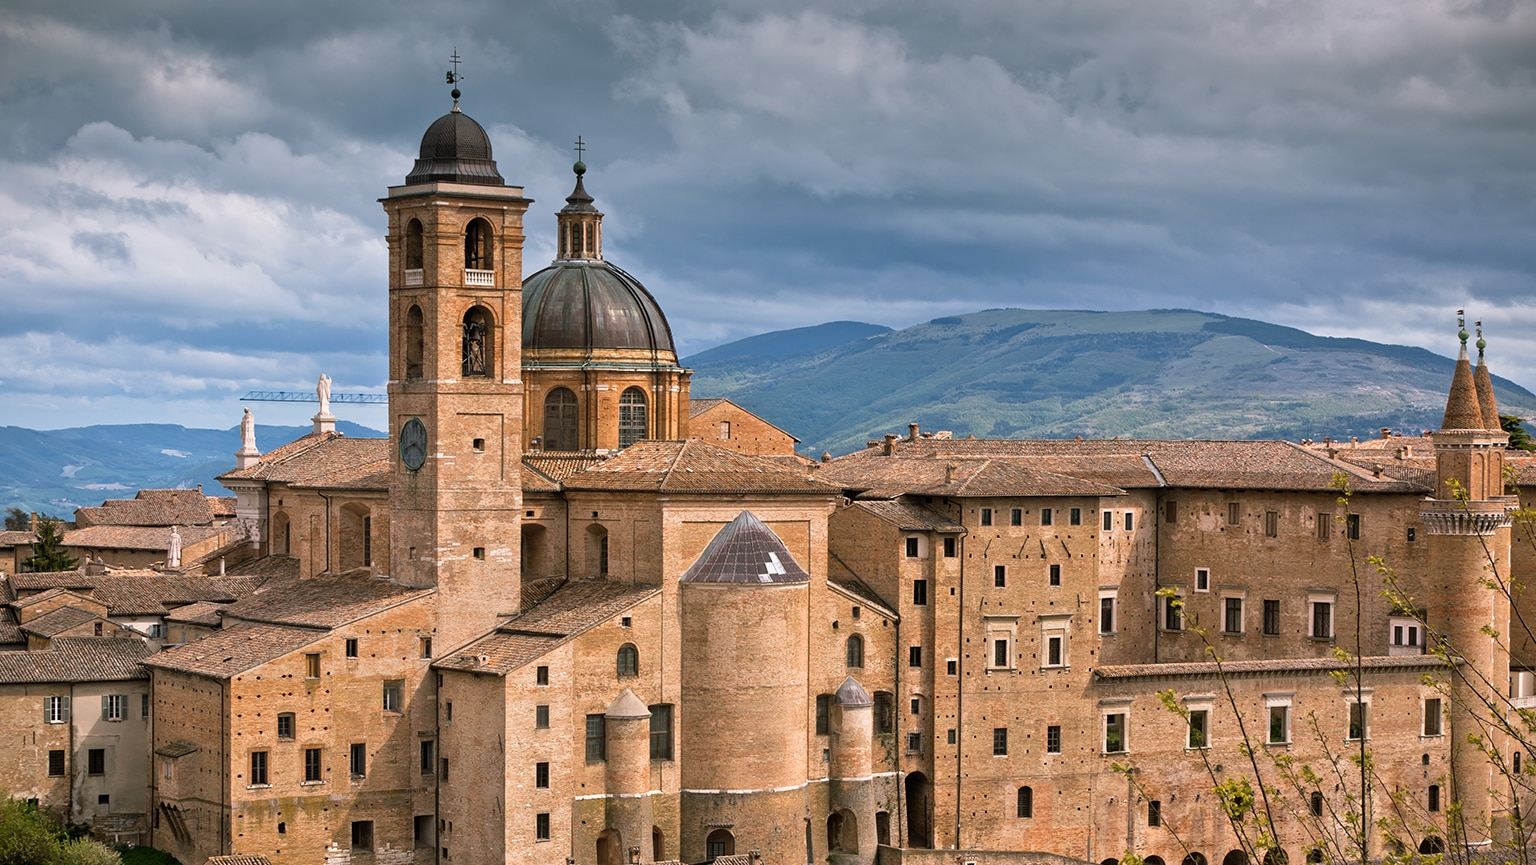 Urbino—Microcosm of Renaissance Civilization